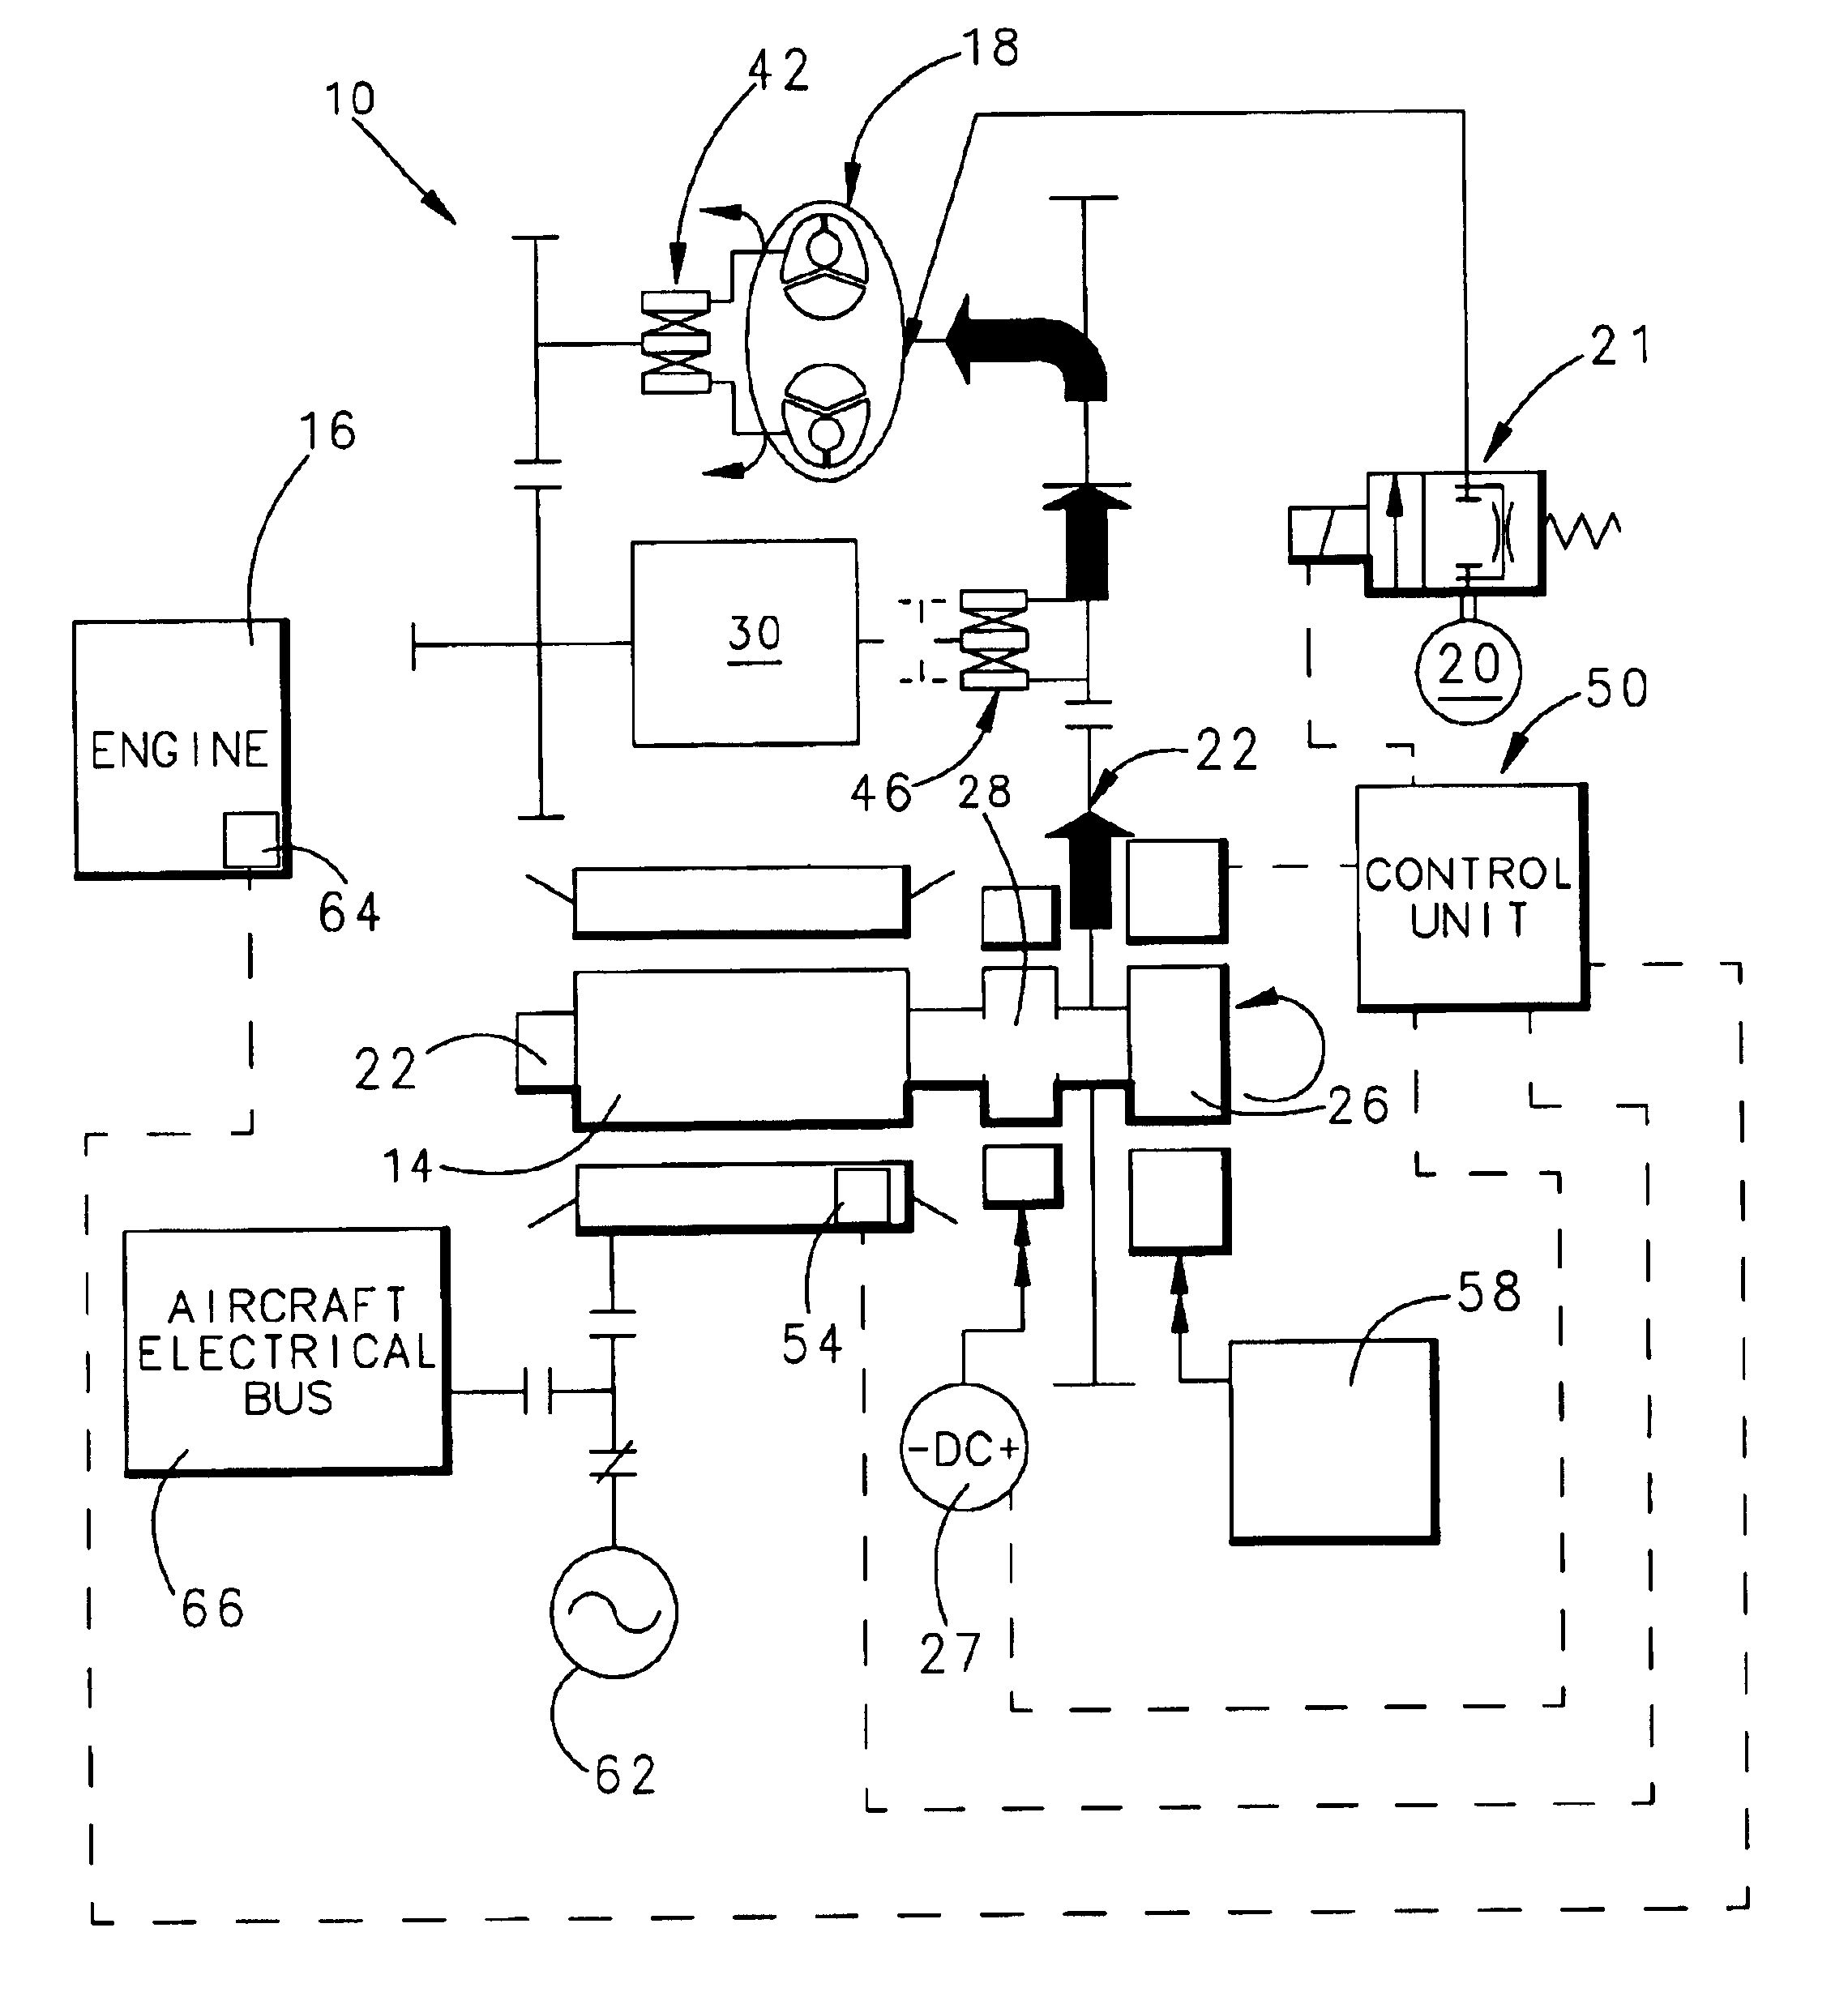 Wiring Diagram For Delco Remy Starter Generator : 47